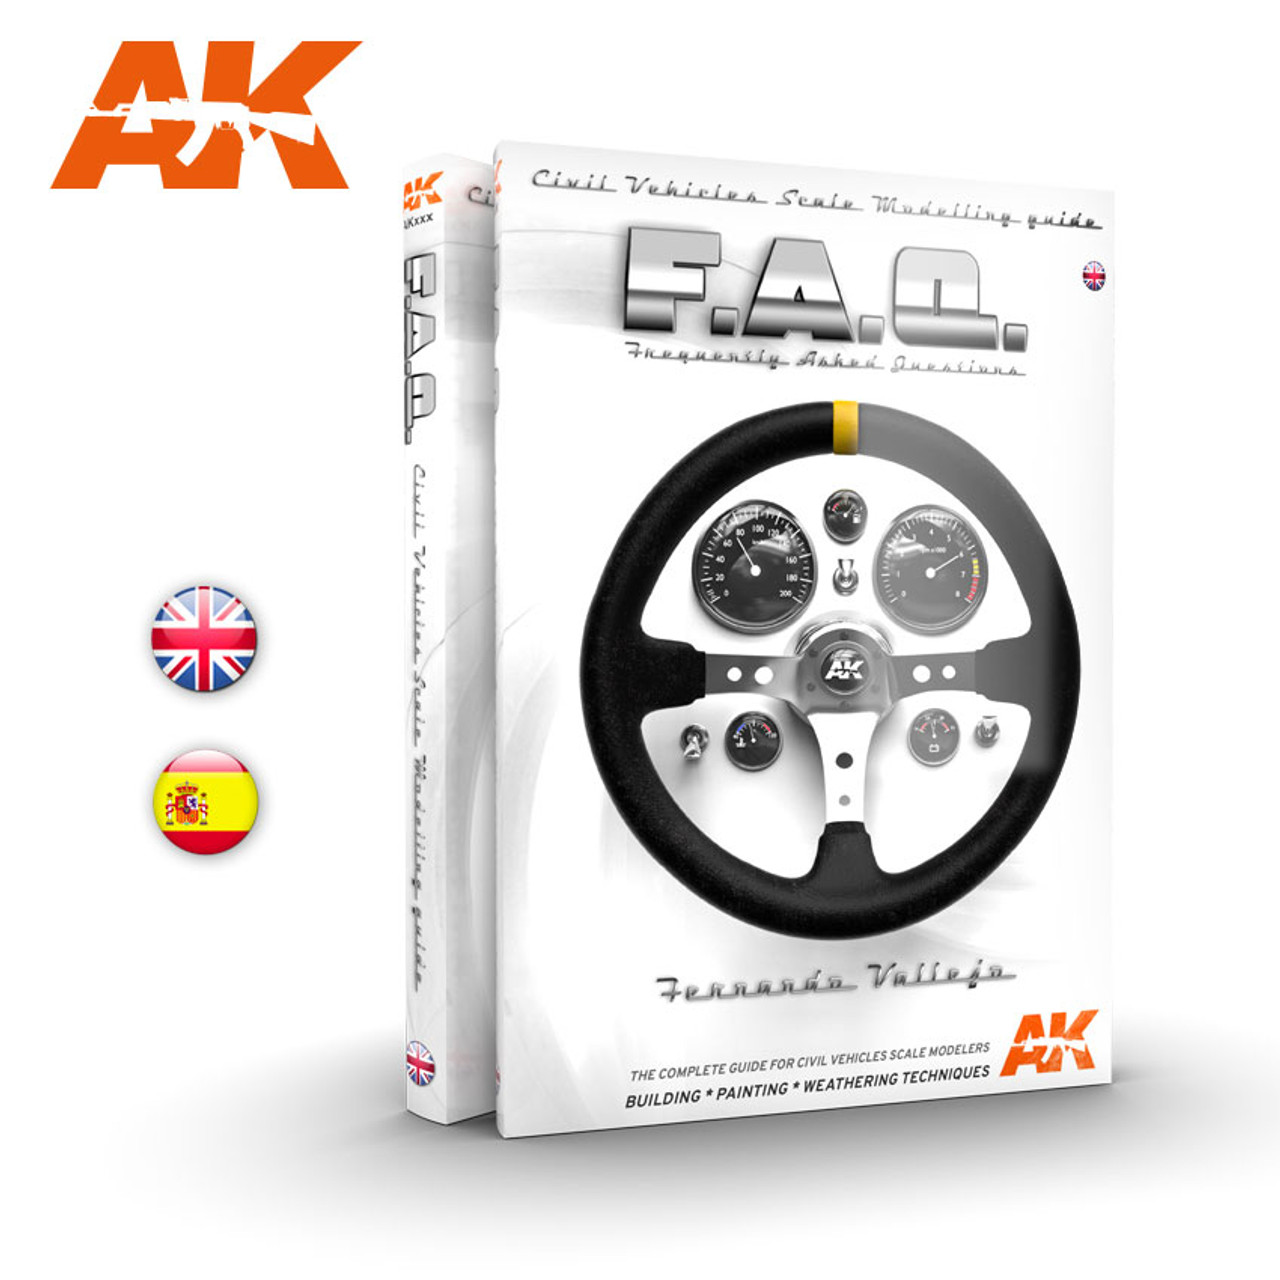 faq cars and civil vehicles scale modeling guide book ak interactive rh megahobby com Speed Guide FAQ Admin Guide